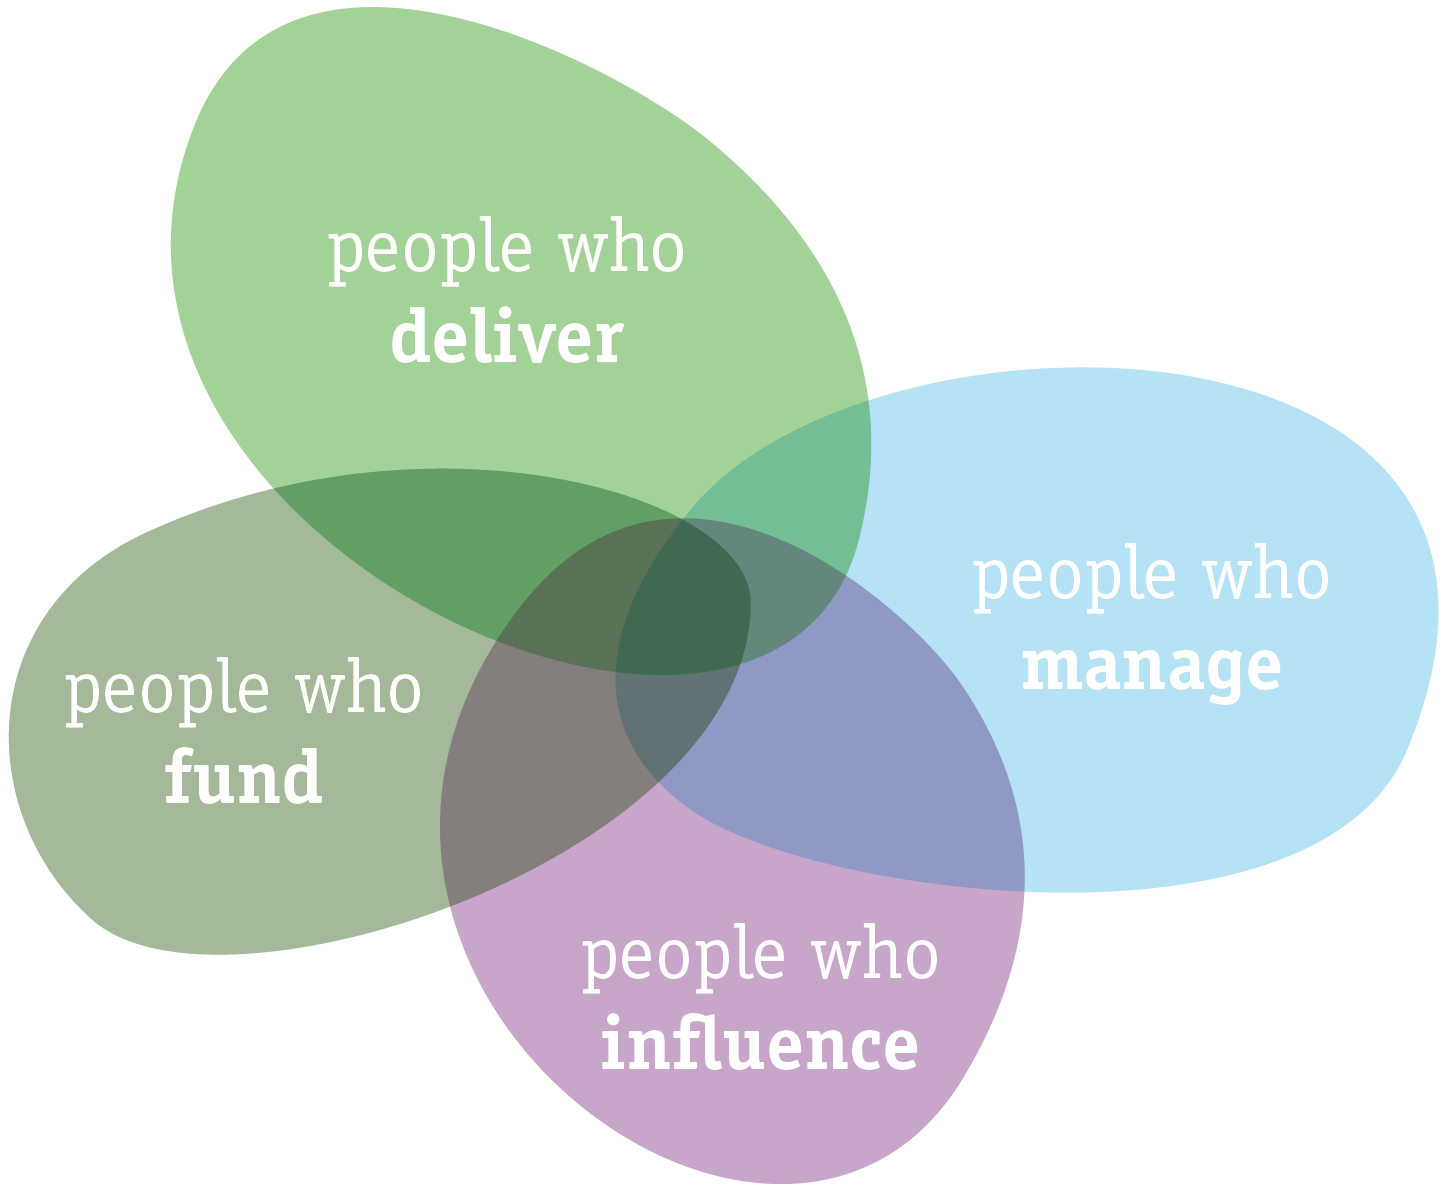 forPrezi-deliver-manage-influence-fund.jpg